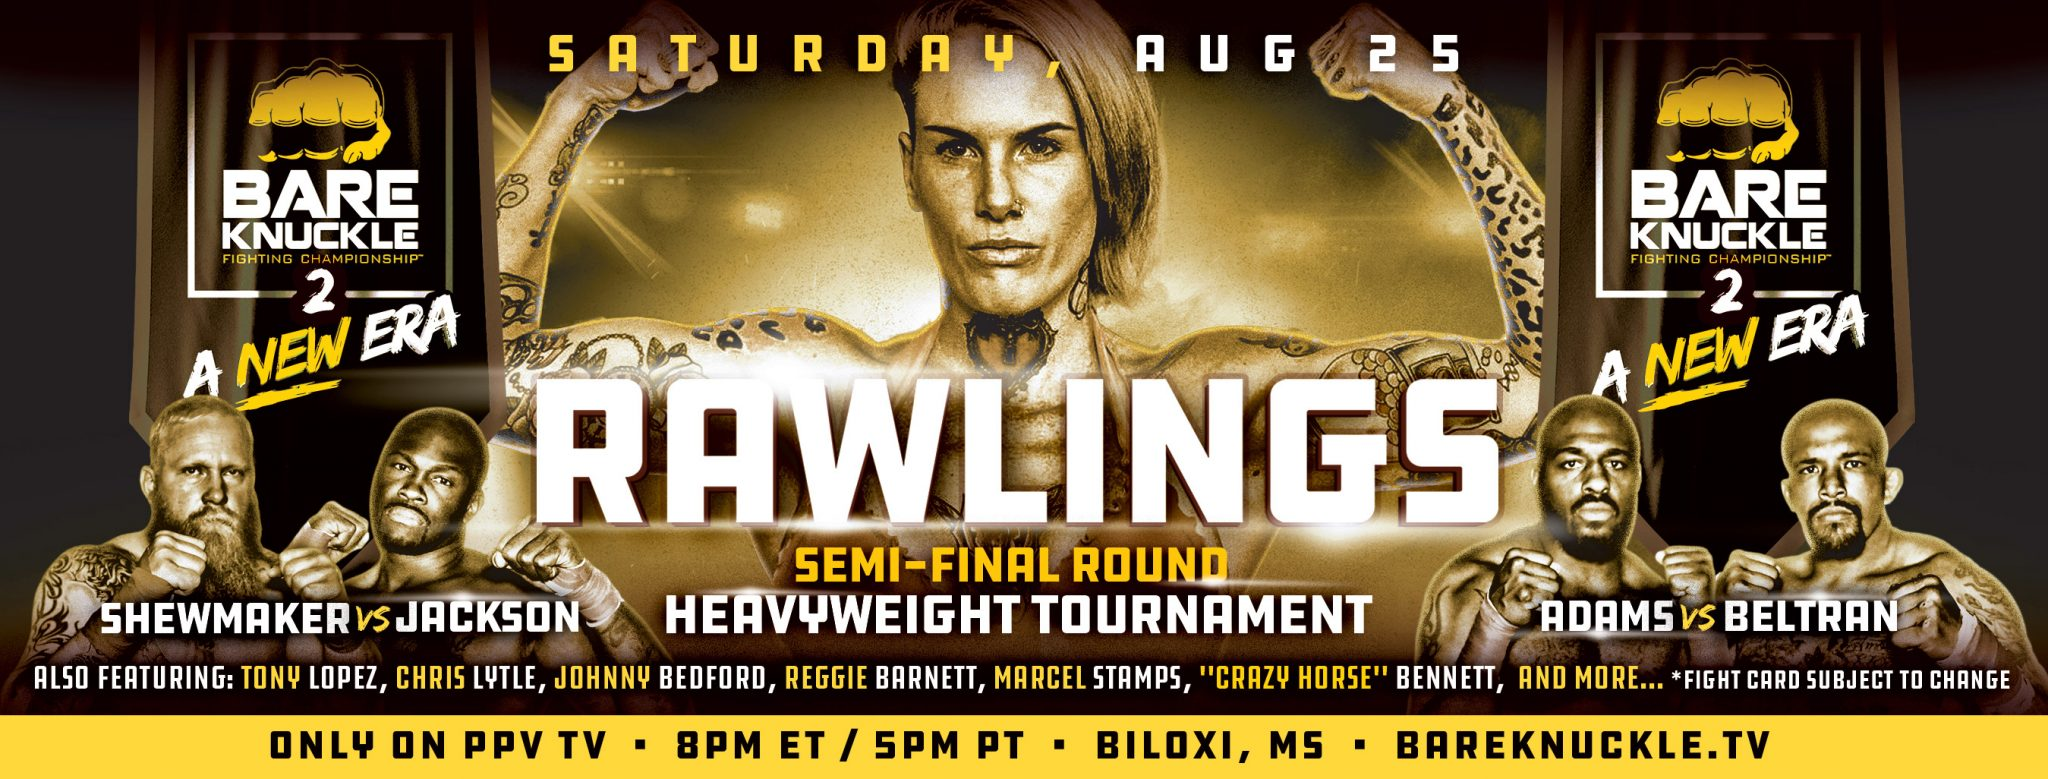 Bare Knucle FC 2 results - Bec Rawlings vs. Britain Hart